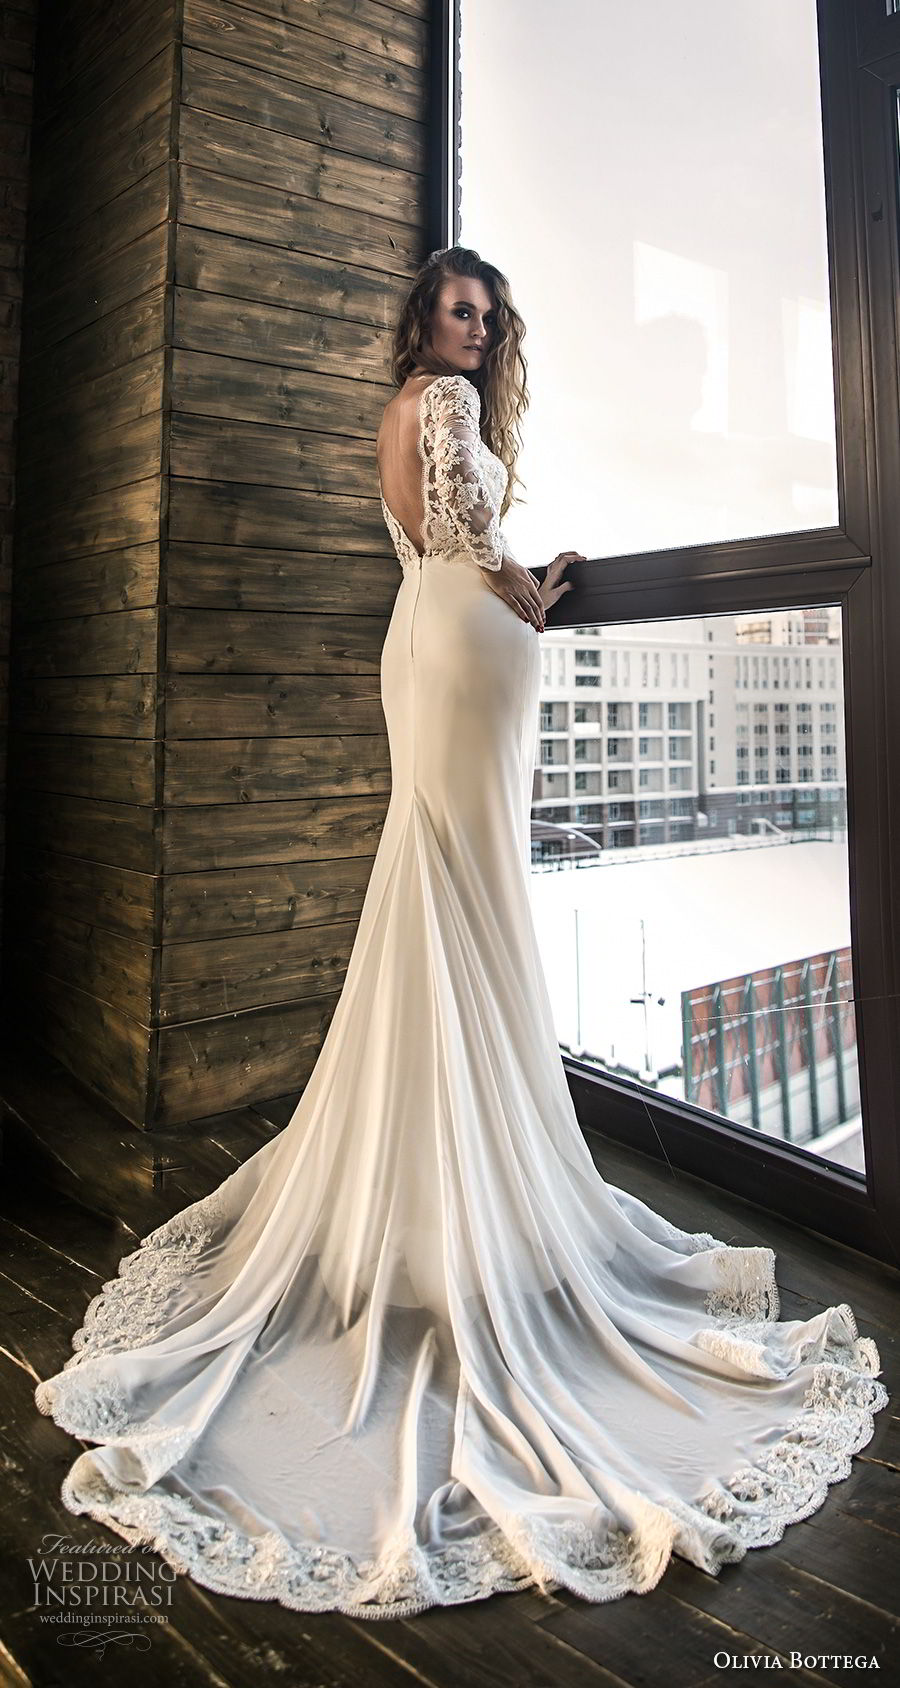 olivia bottega 2018 bridal long sleeves illusion bateau sweetheart neckline heavily embellished bodice elegant fit and flare wedding dress v back chapel train (7) bv